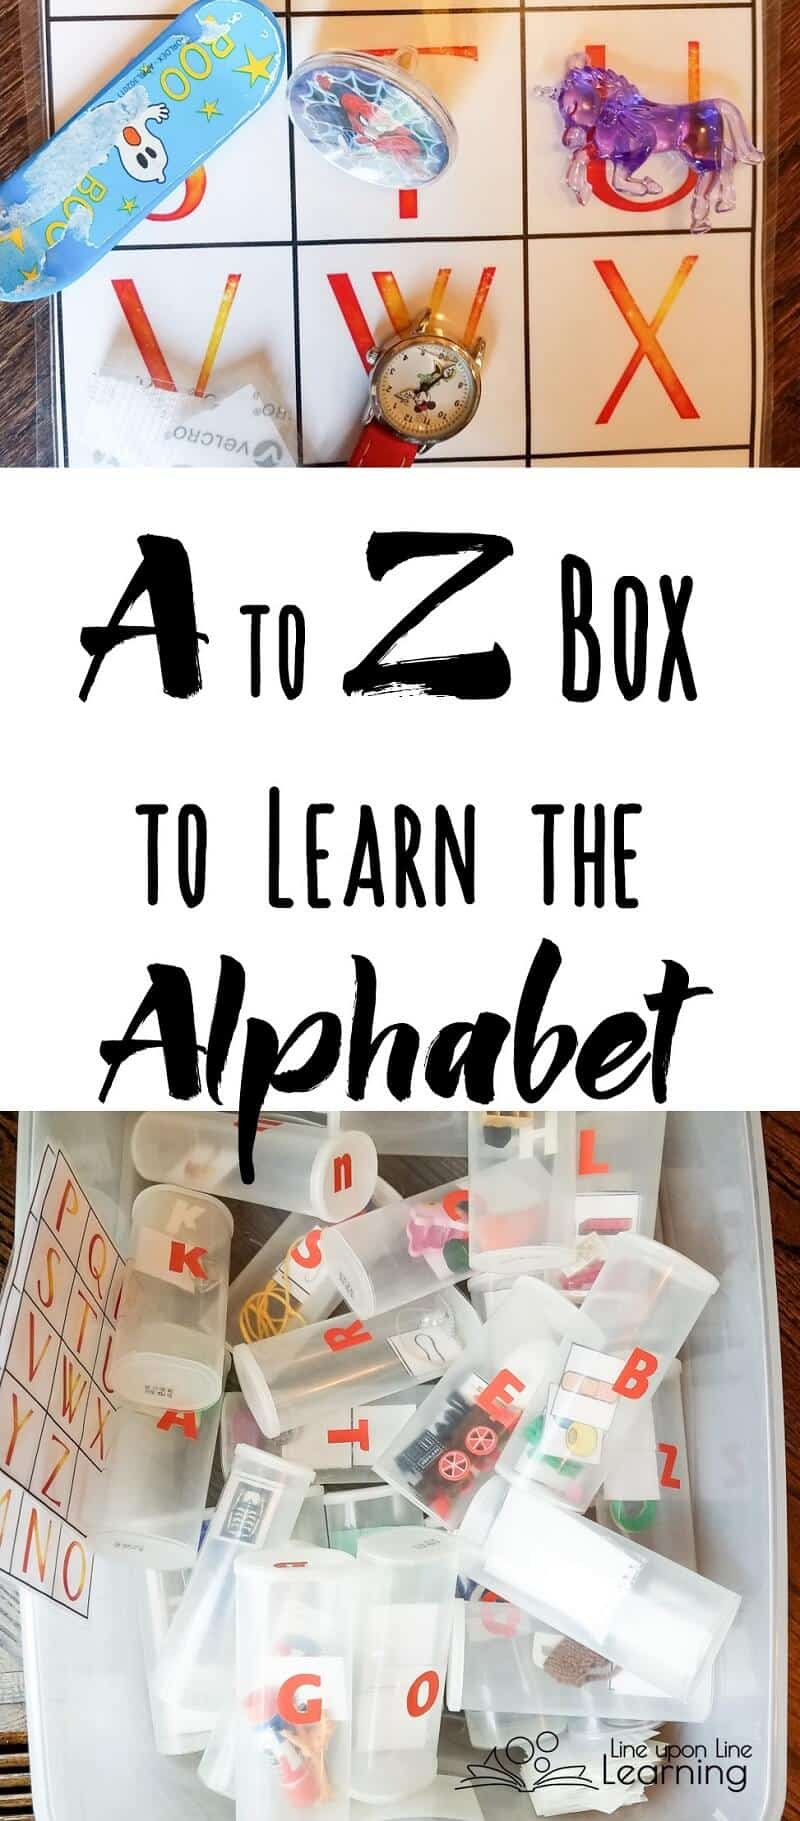 Making an alphabet box has helped make a hands-on alphabet learning experience. We love our A to Z box, full of trinkets to play with (as we sort and alphabetize!)